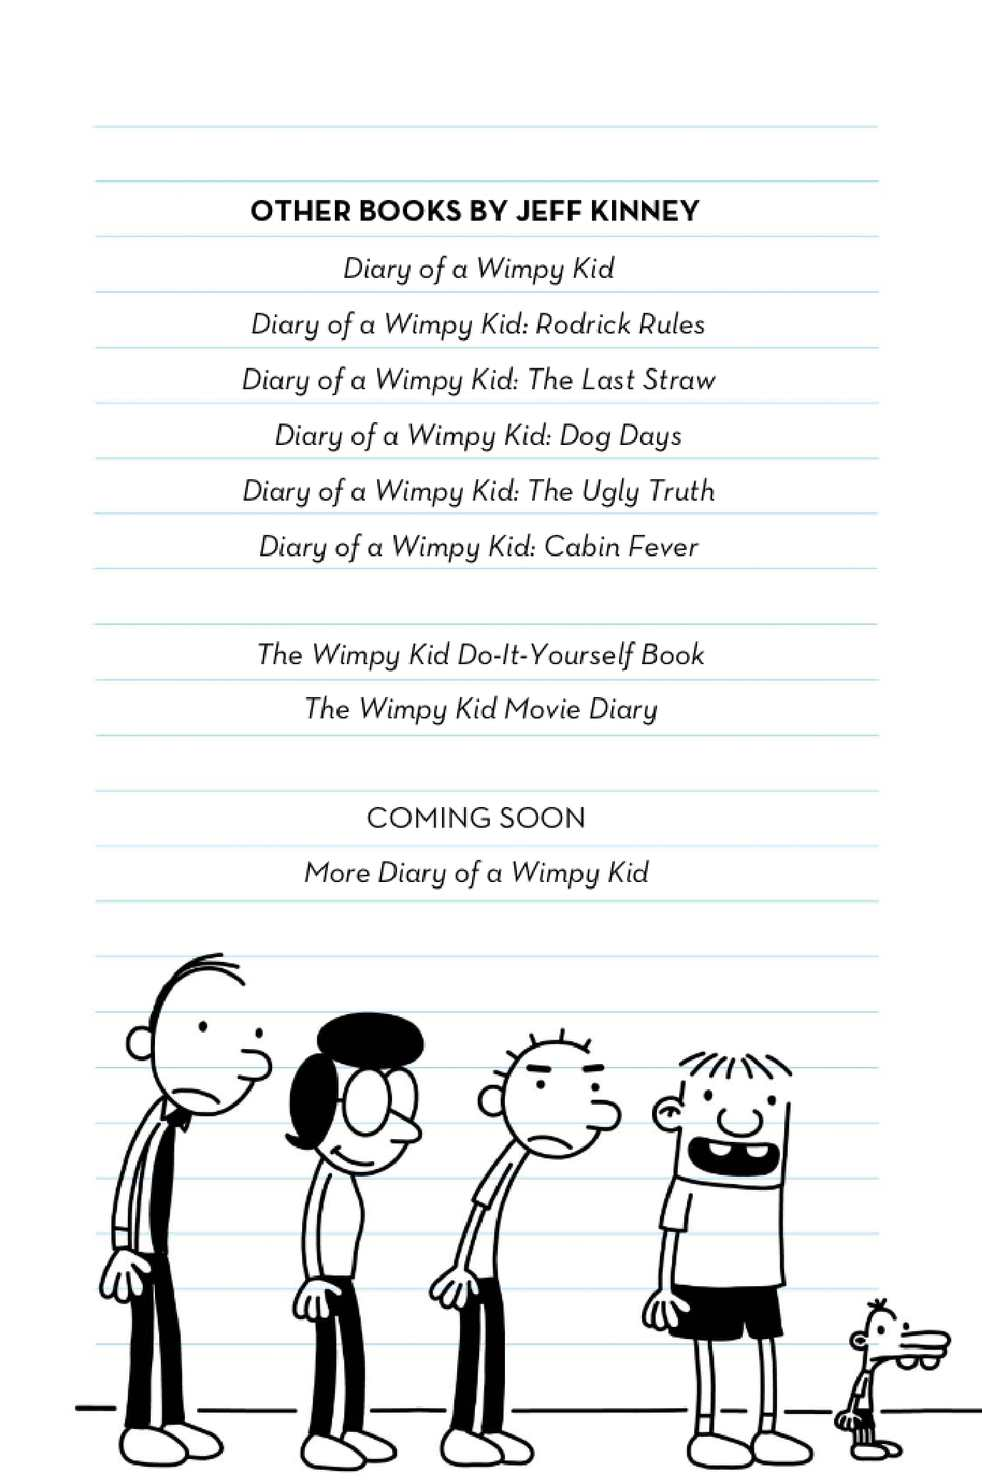 Diary Of A Wimpy Kid 7 The Third Wheel Calameo Downloader